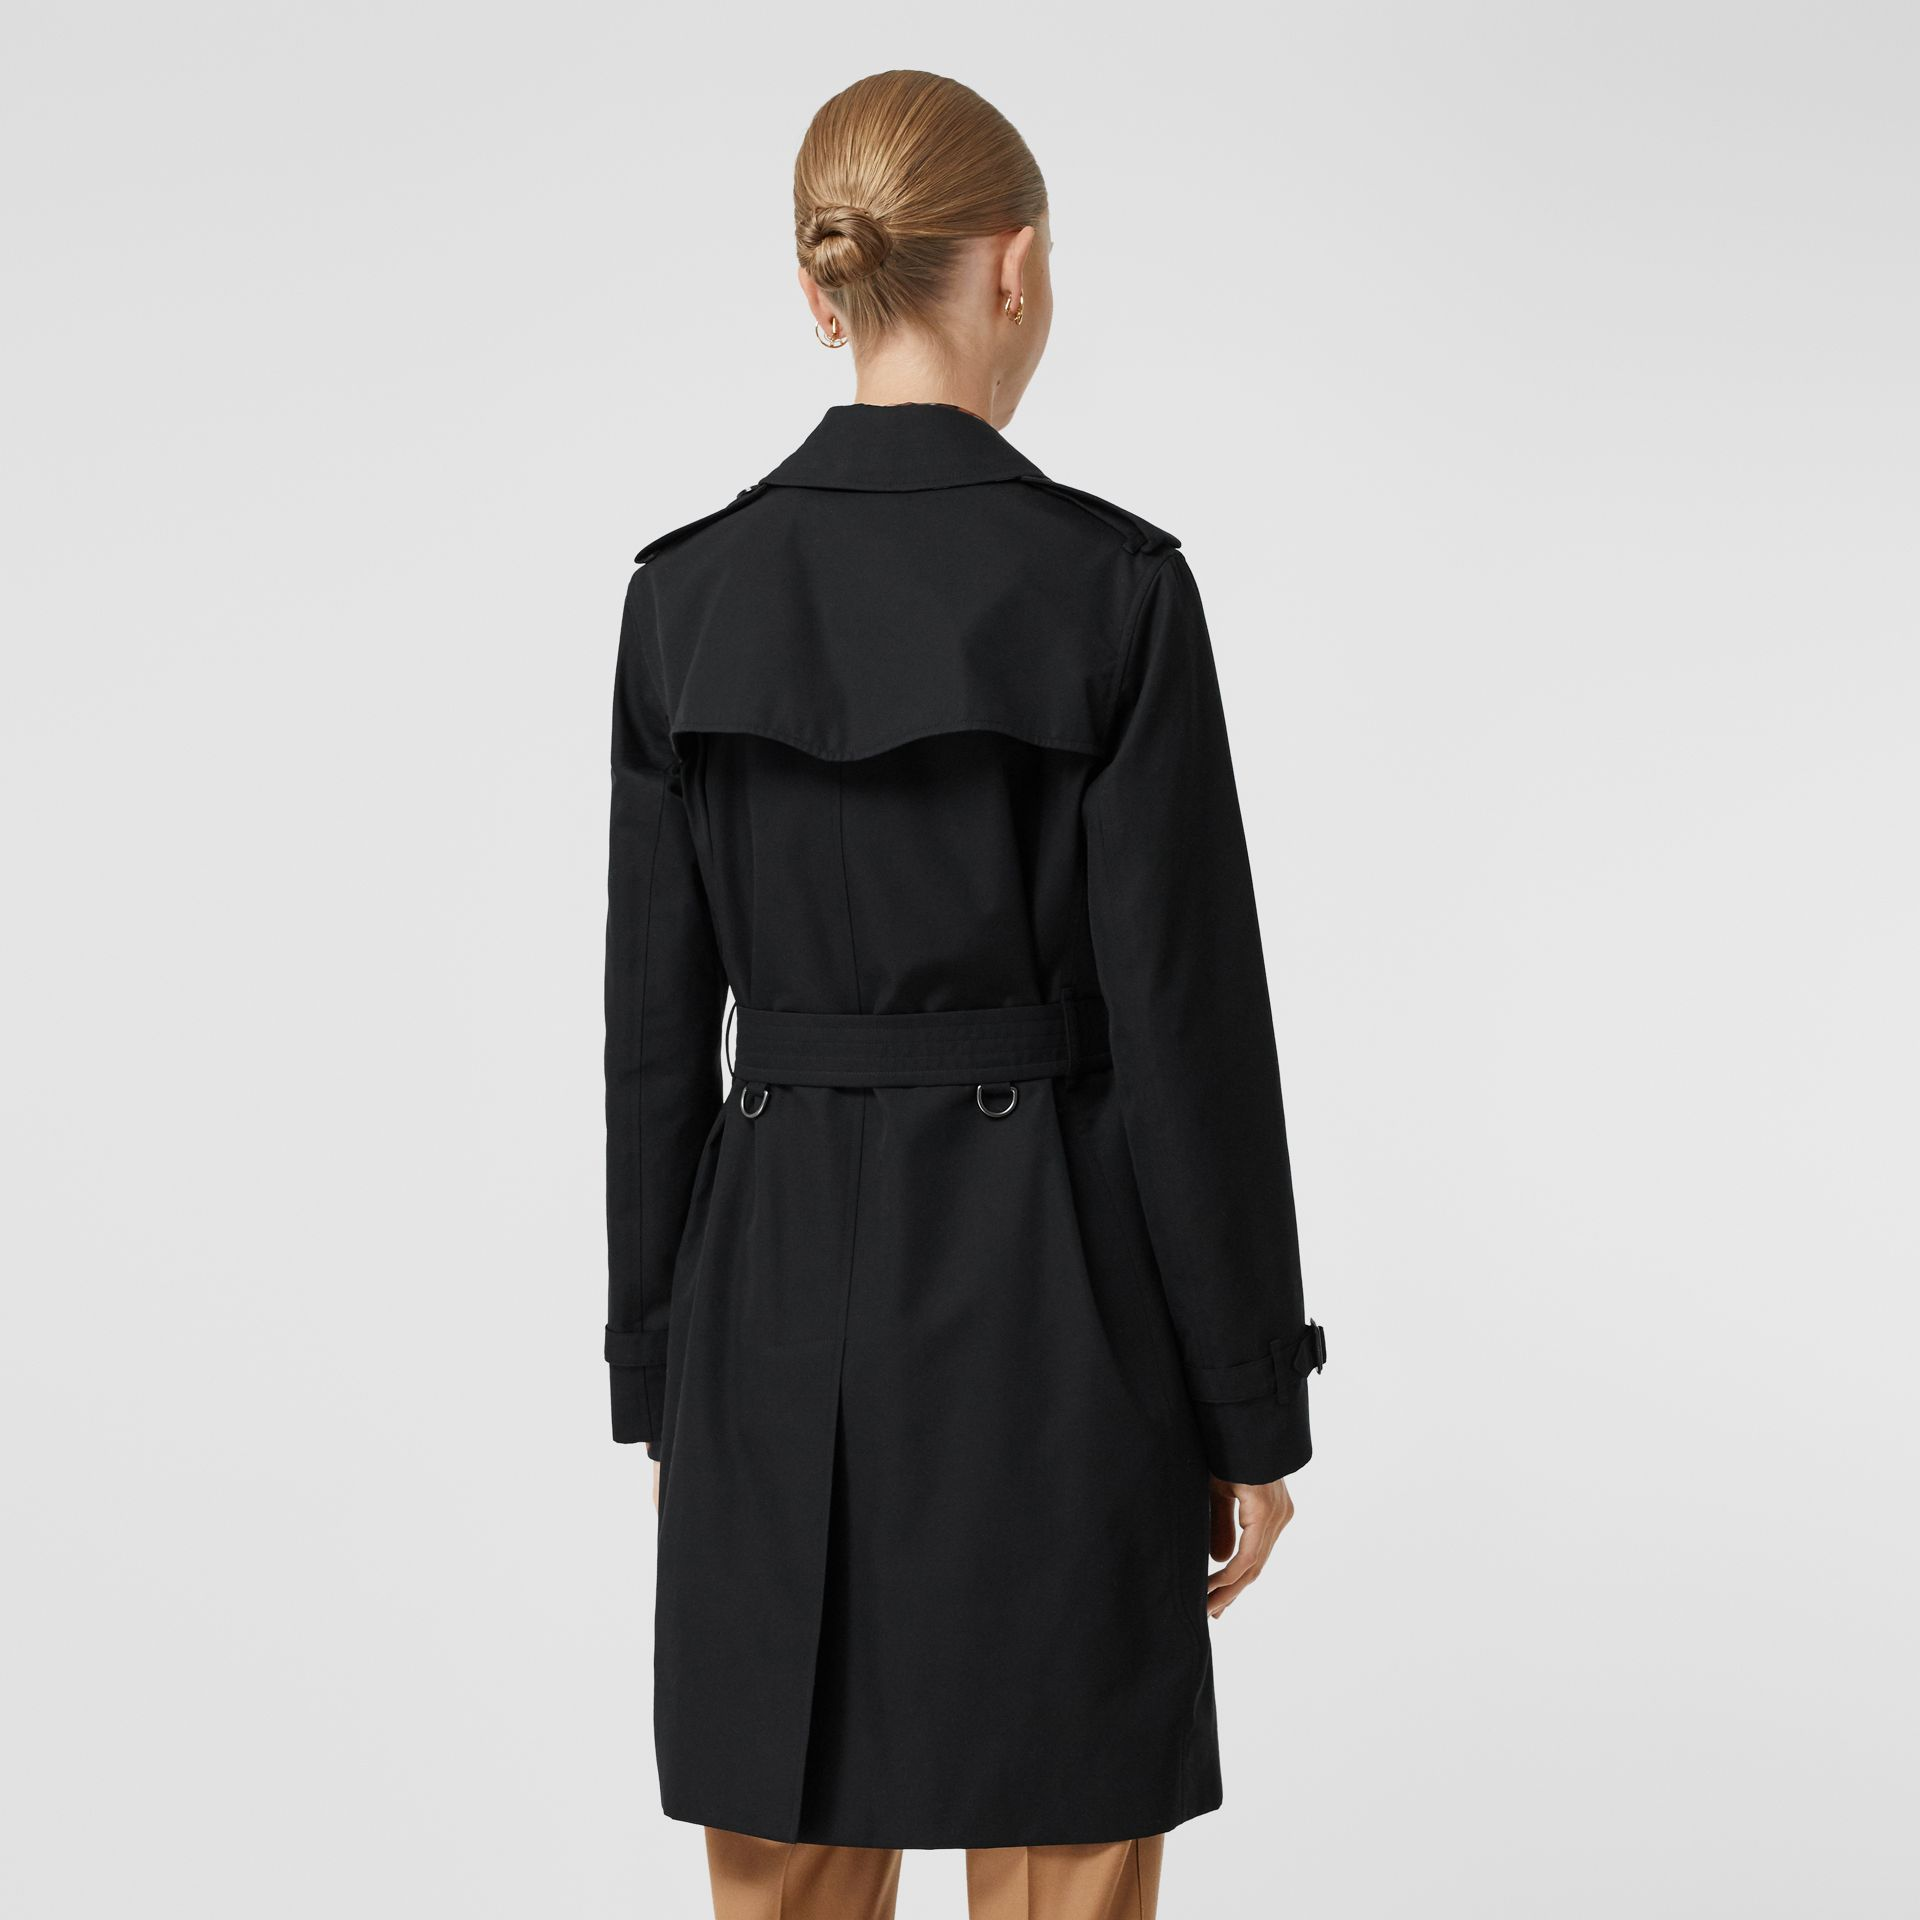 Kensington Fit Cotton Gabardine Trench Coat in Black - Women | Burberry Hong Kong S.A.R - gallery image 6